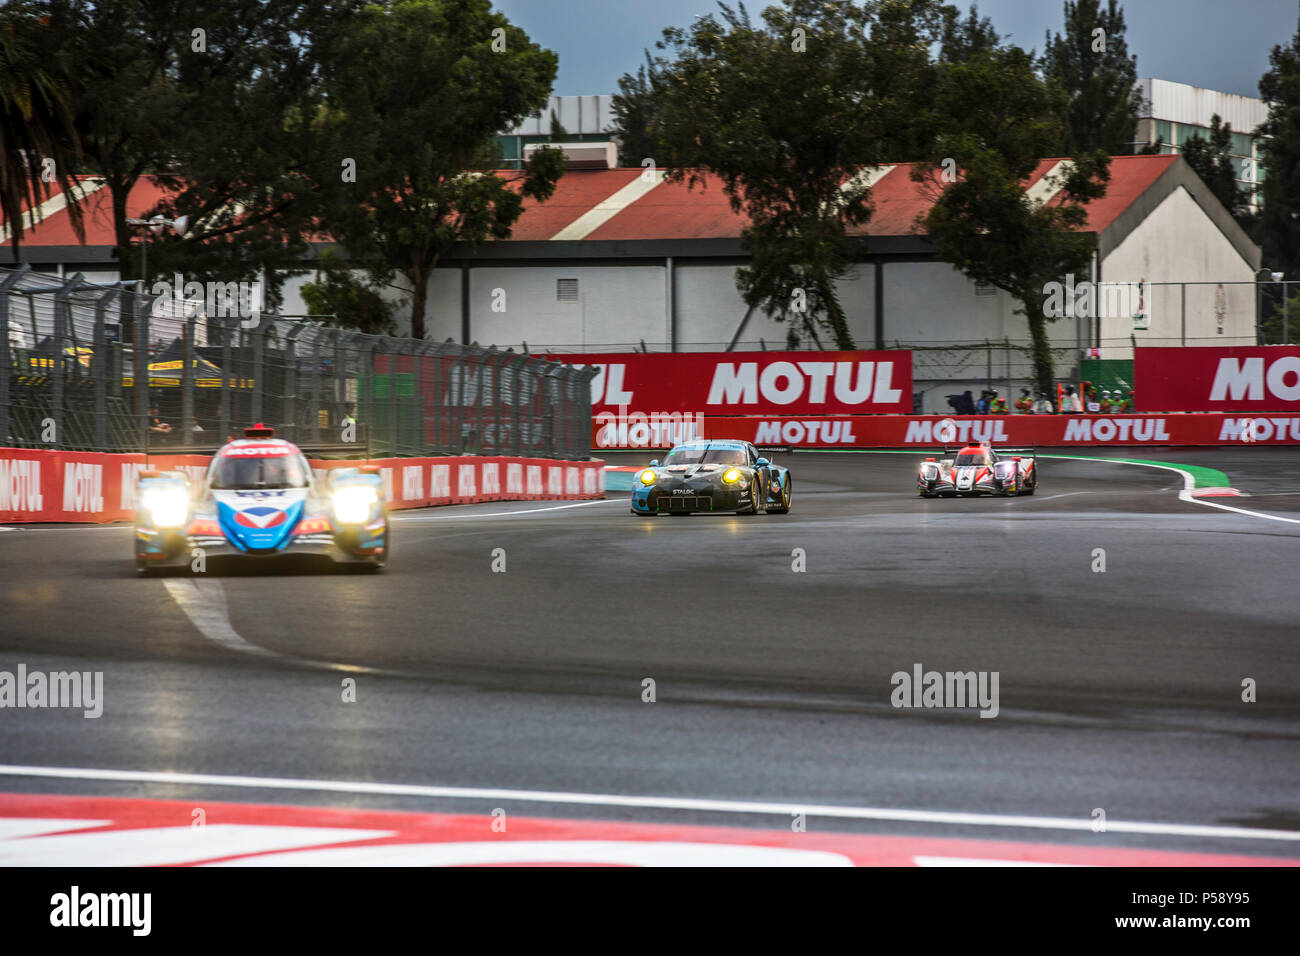 Mexico City, Mexico – September 01, 2017: Autodromo Hermanos